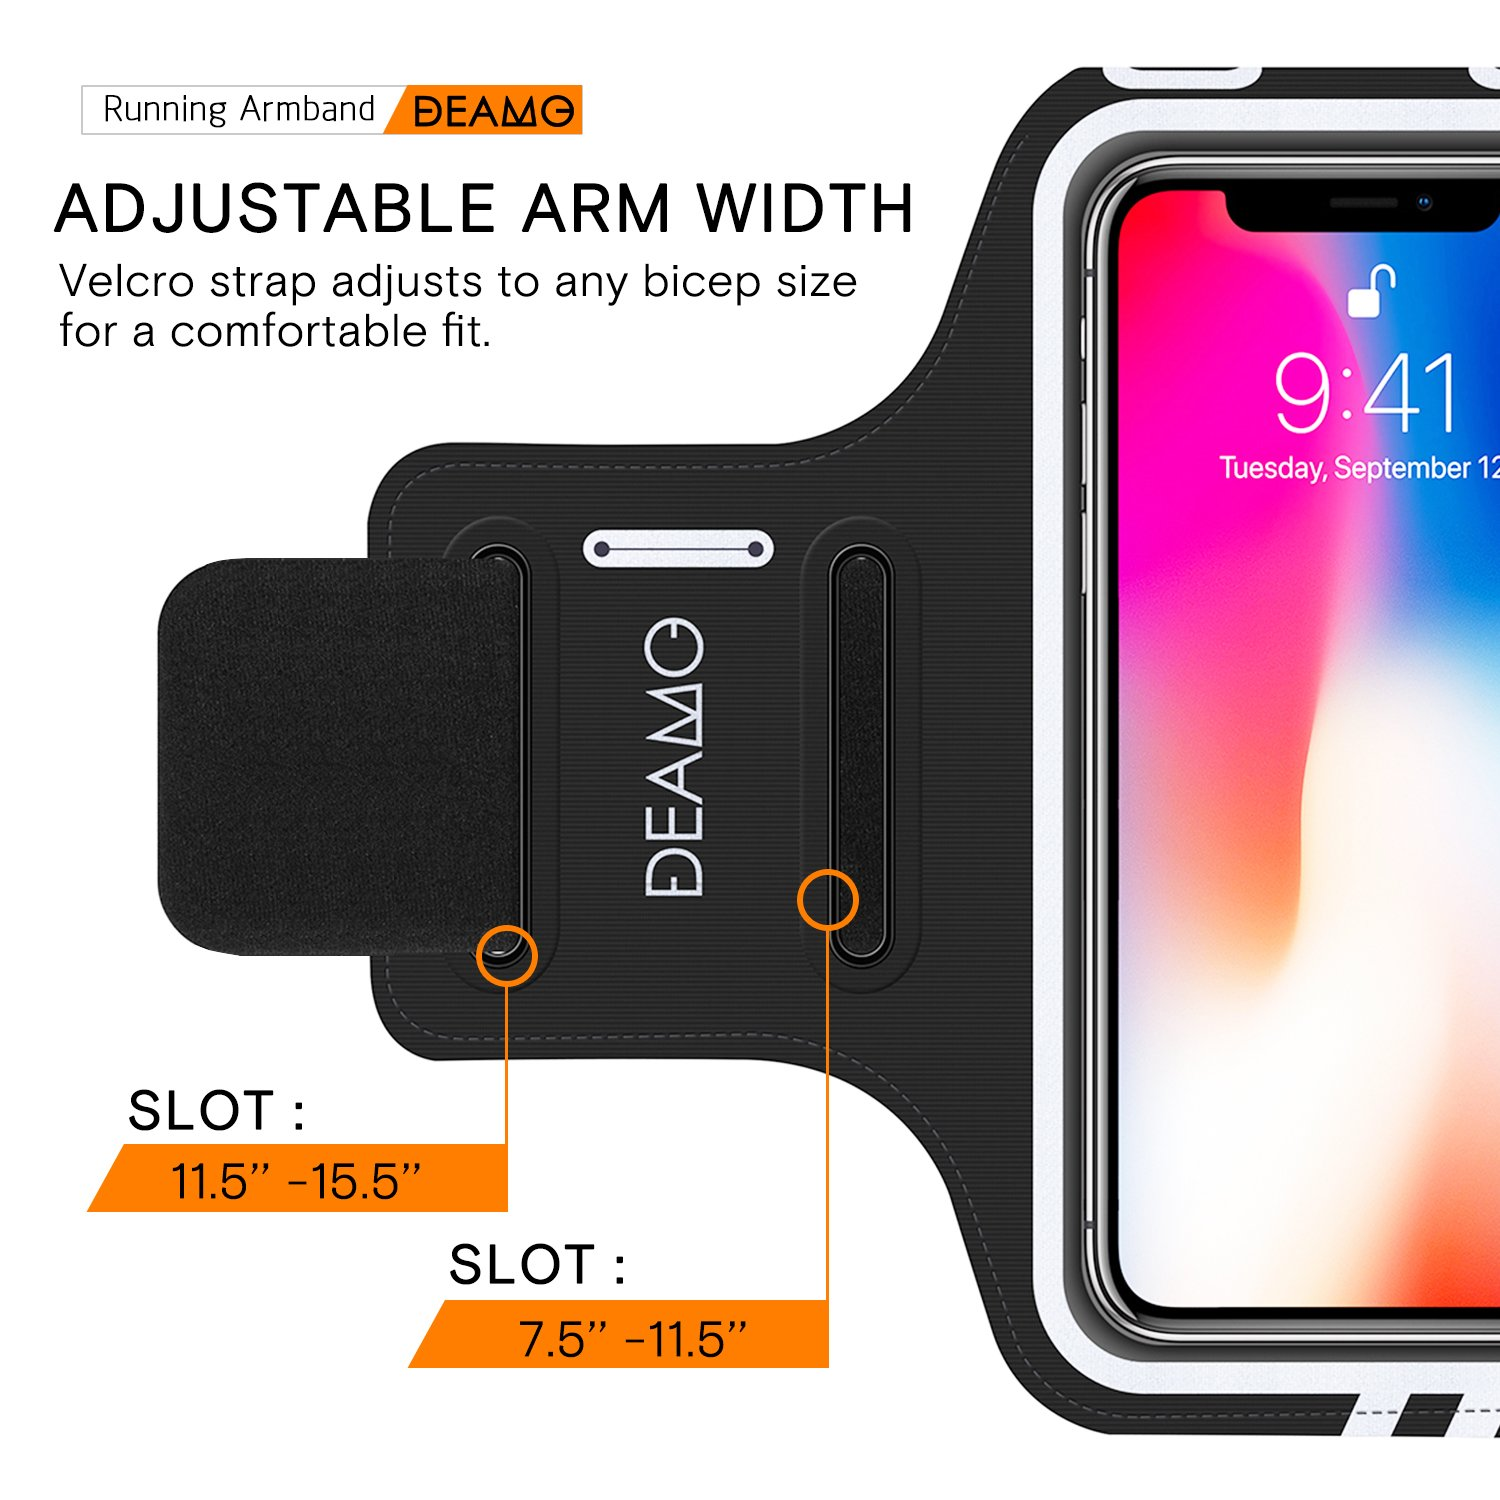 IPhone X, 8, 8+, 7, 7+, 6S, 6S+, 6, 6+ Samsung S8 S9 SPORTS Armband - Fingerprint Touch, Great for Running, Cycling or any Fitness Activity, Unique Hidden Pocket for Stores Cash, Cards and Keys. by Deamo (Image #6)